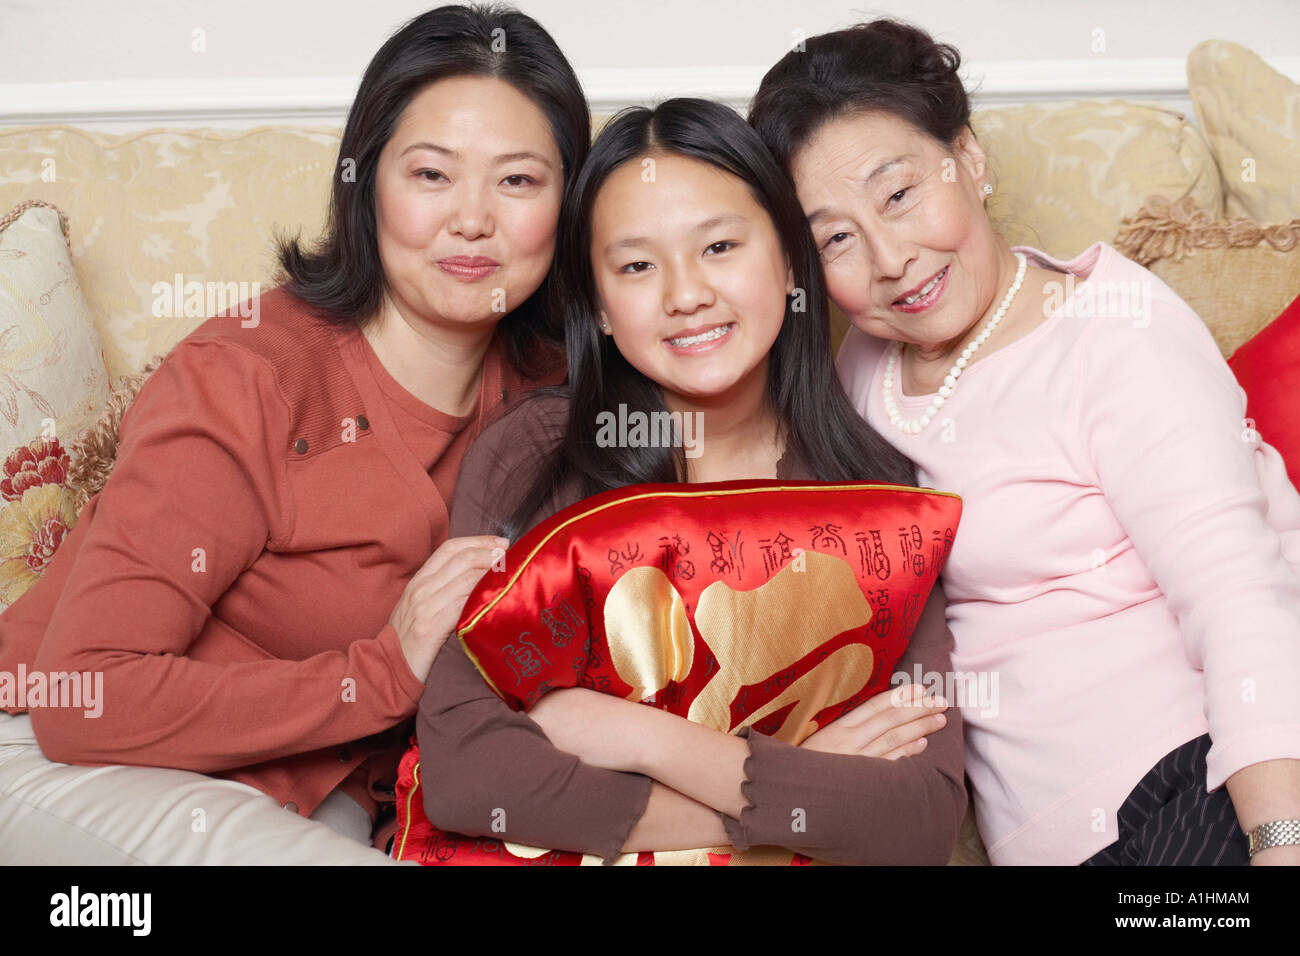 Portrait of a girl with her mother and her grandmother - Stock Image